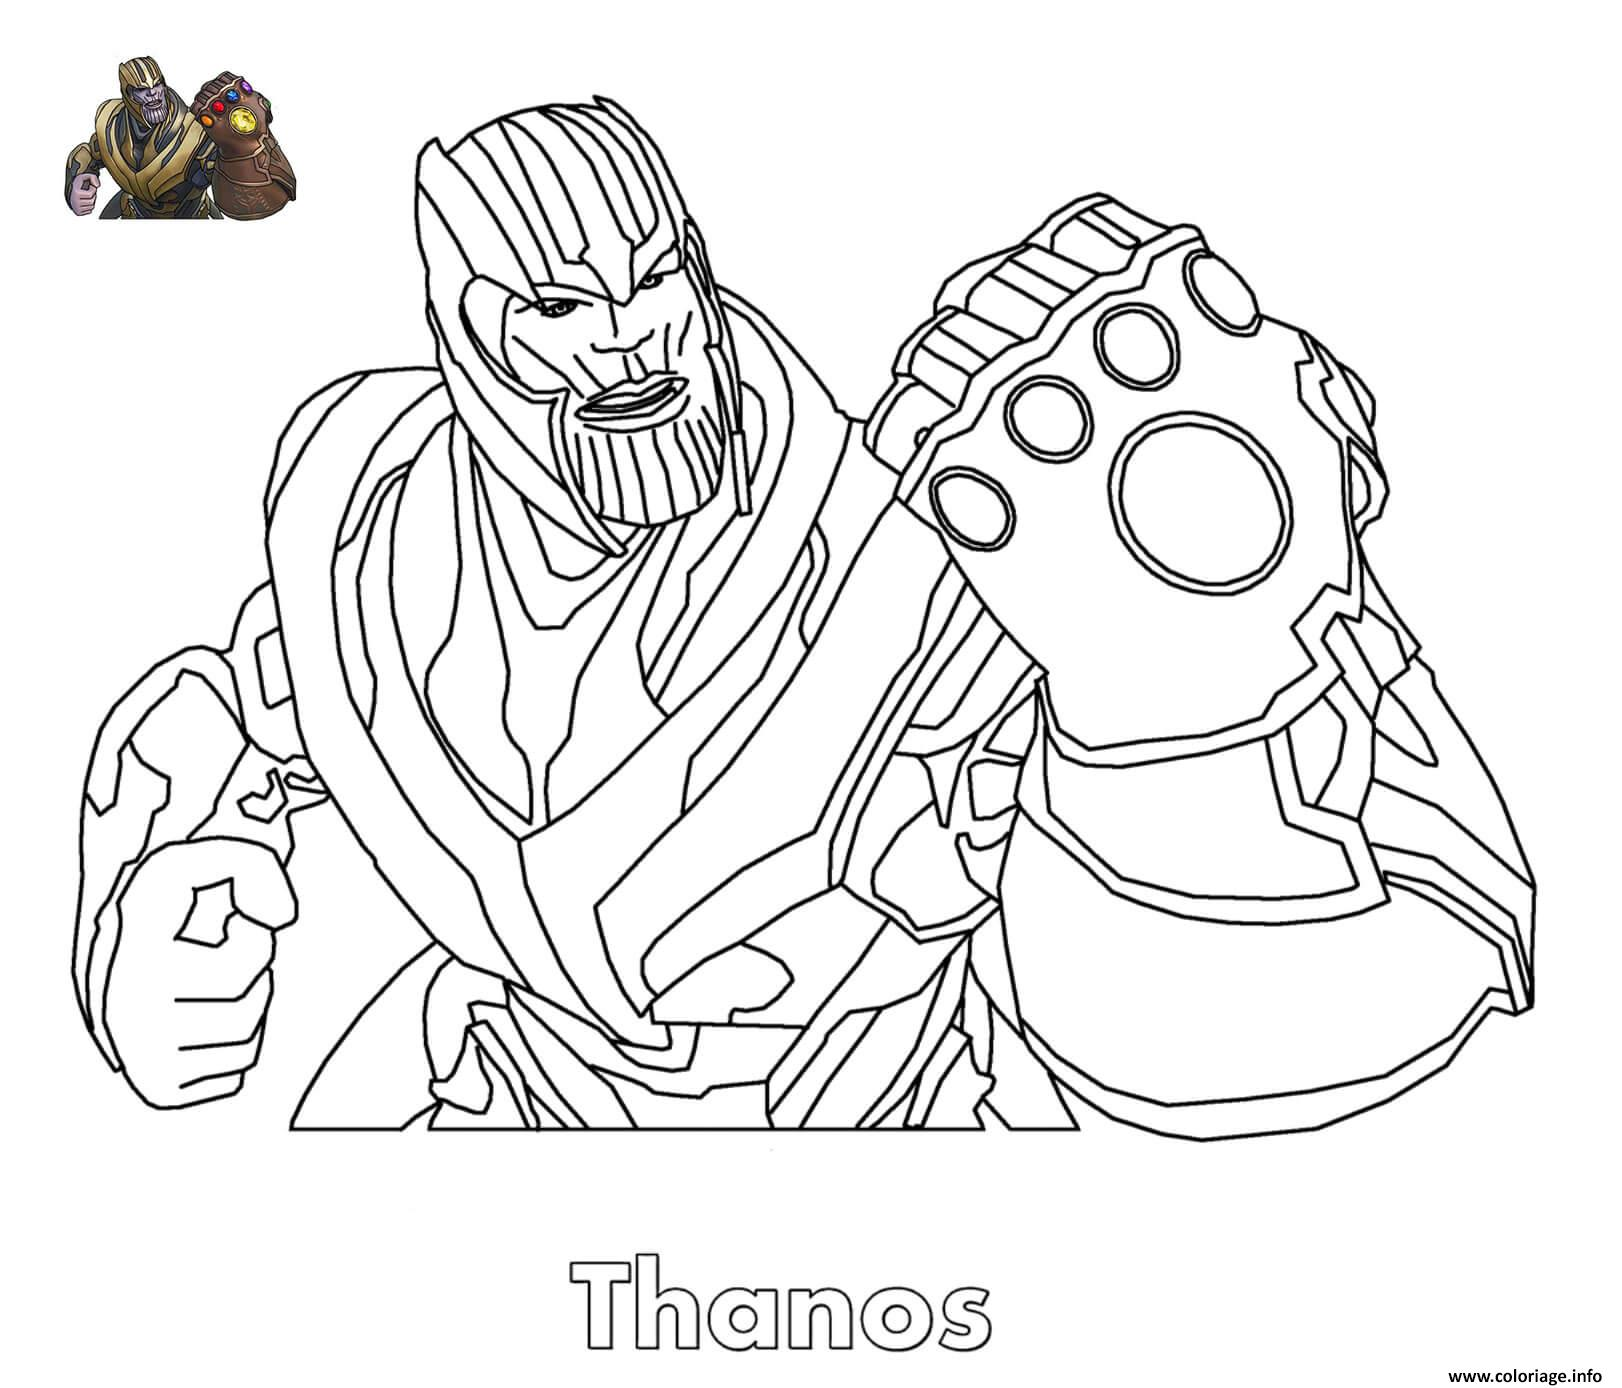 Coloriage Thanos Fortnite Dessin